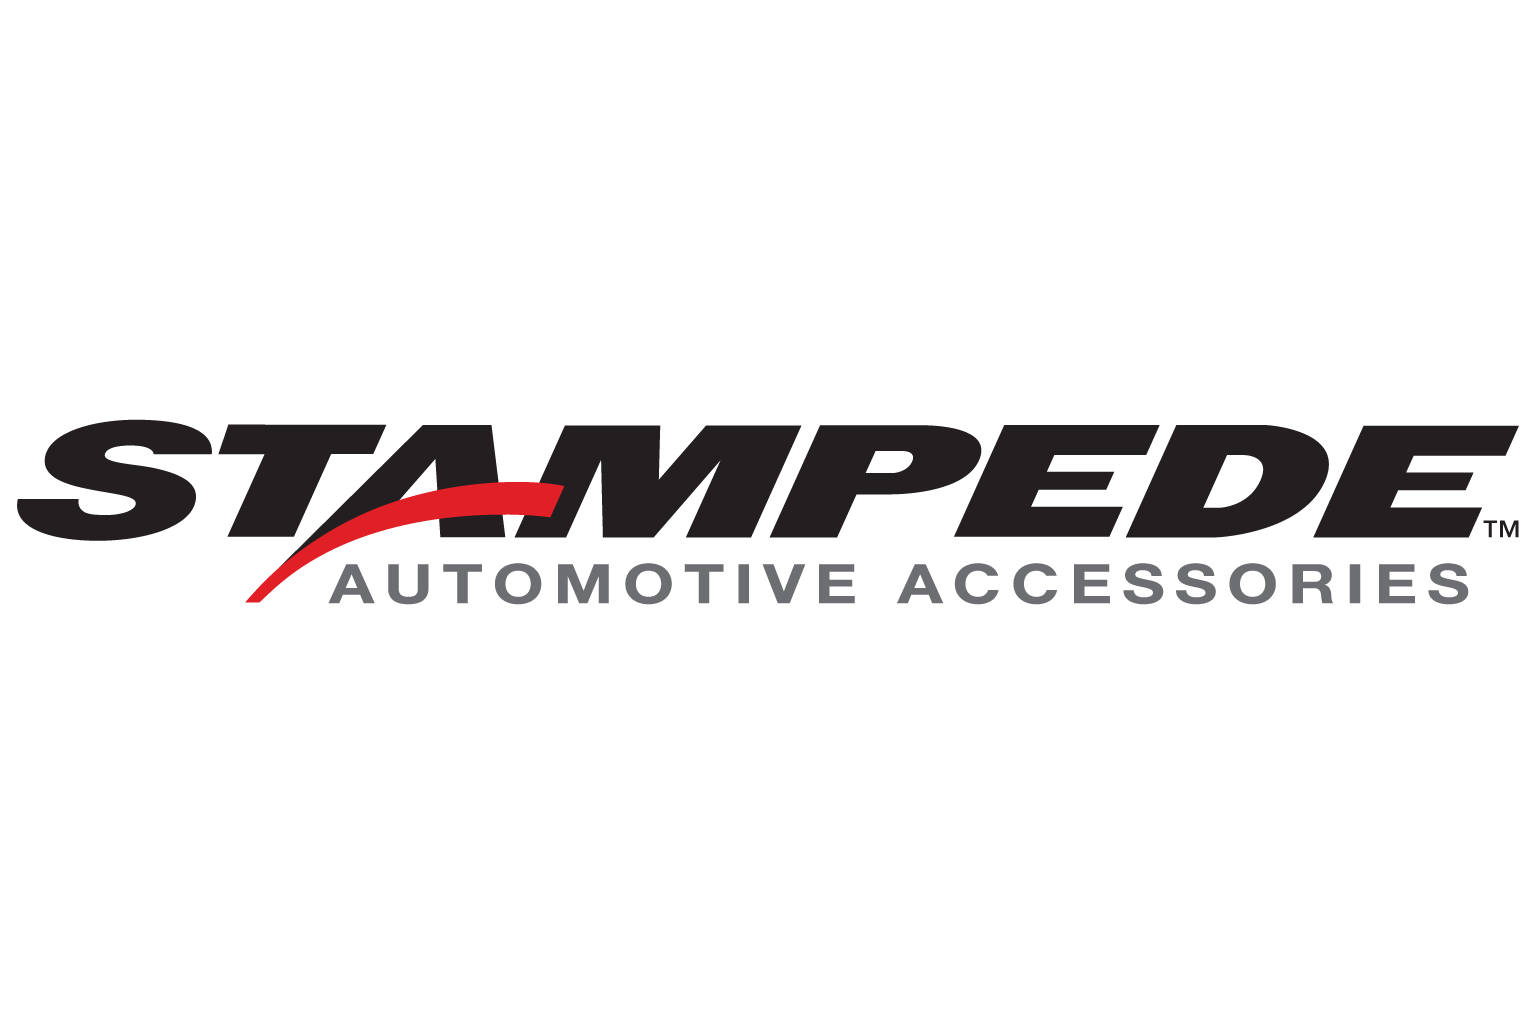 Stampede Automotive Accessories